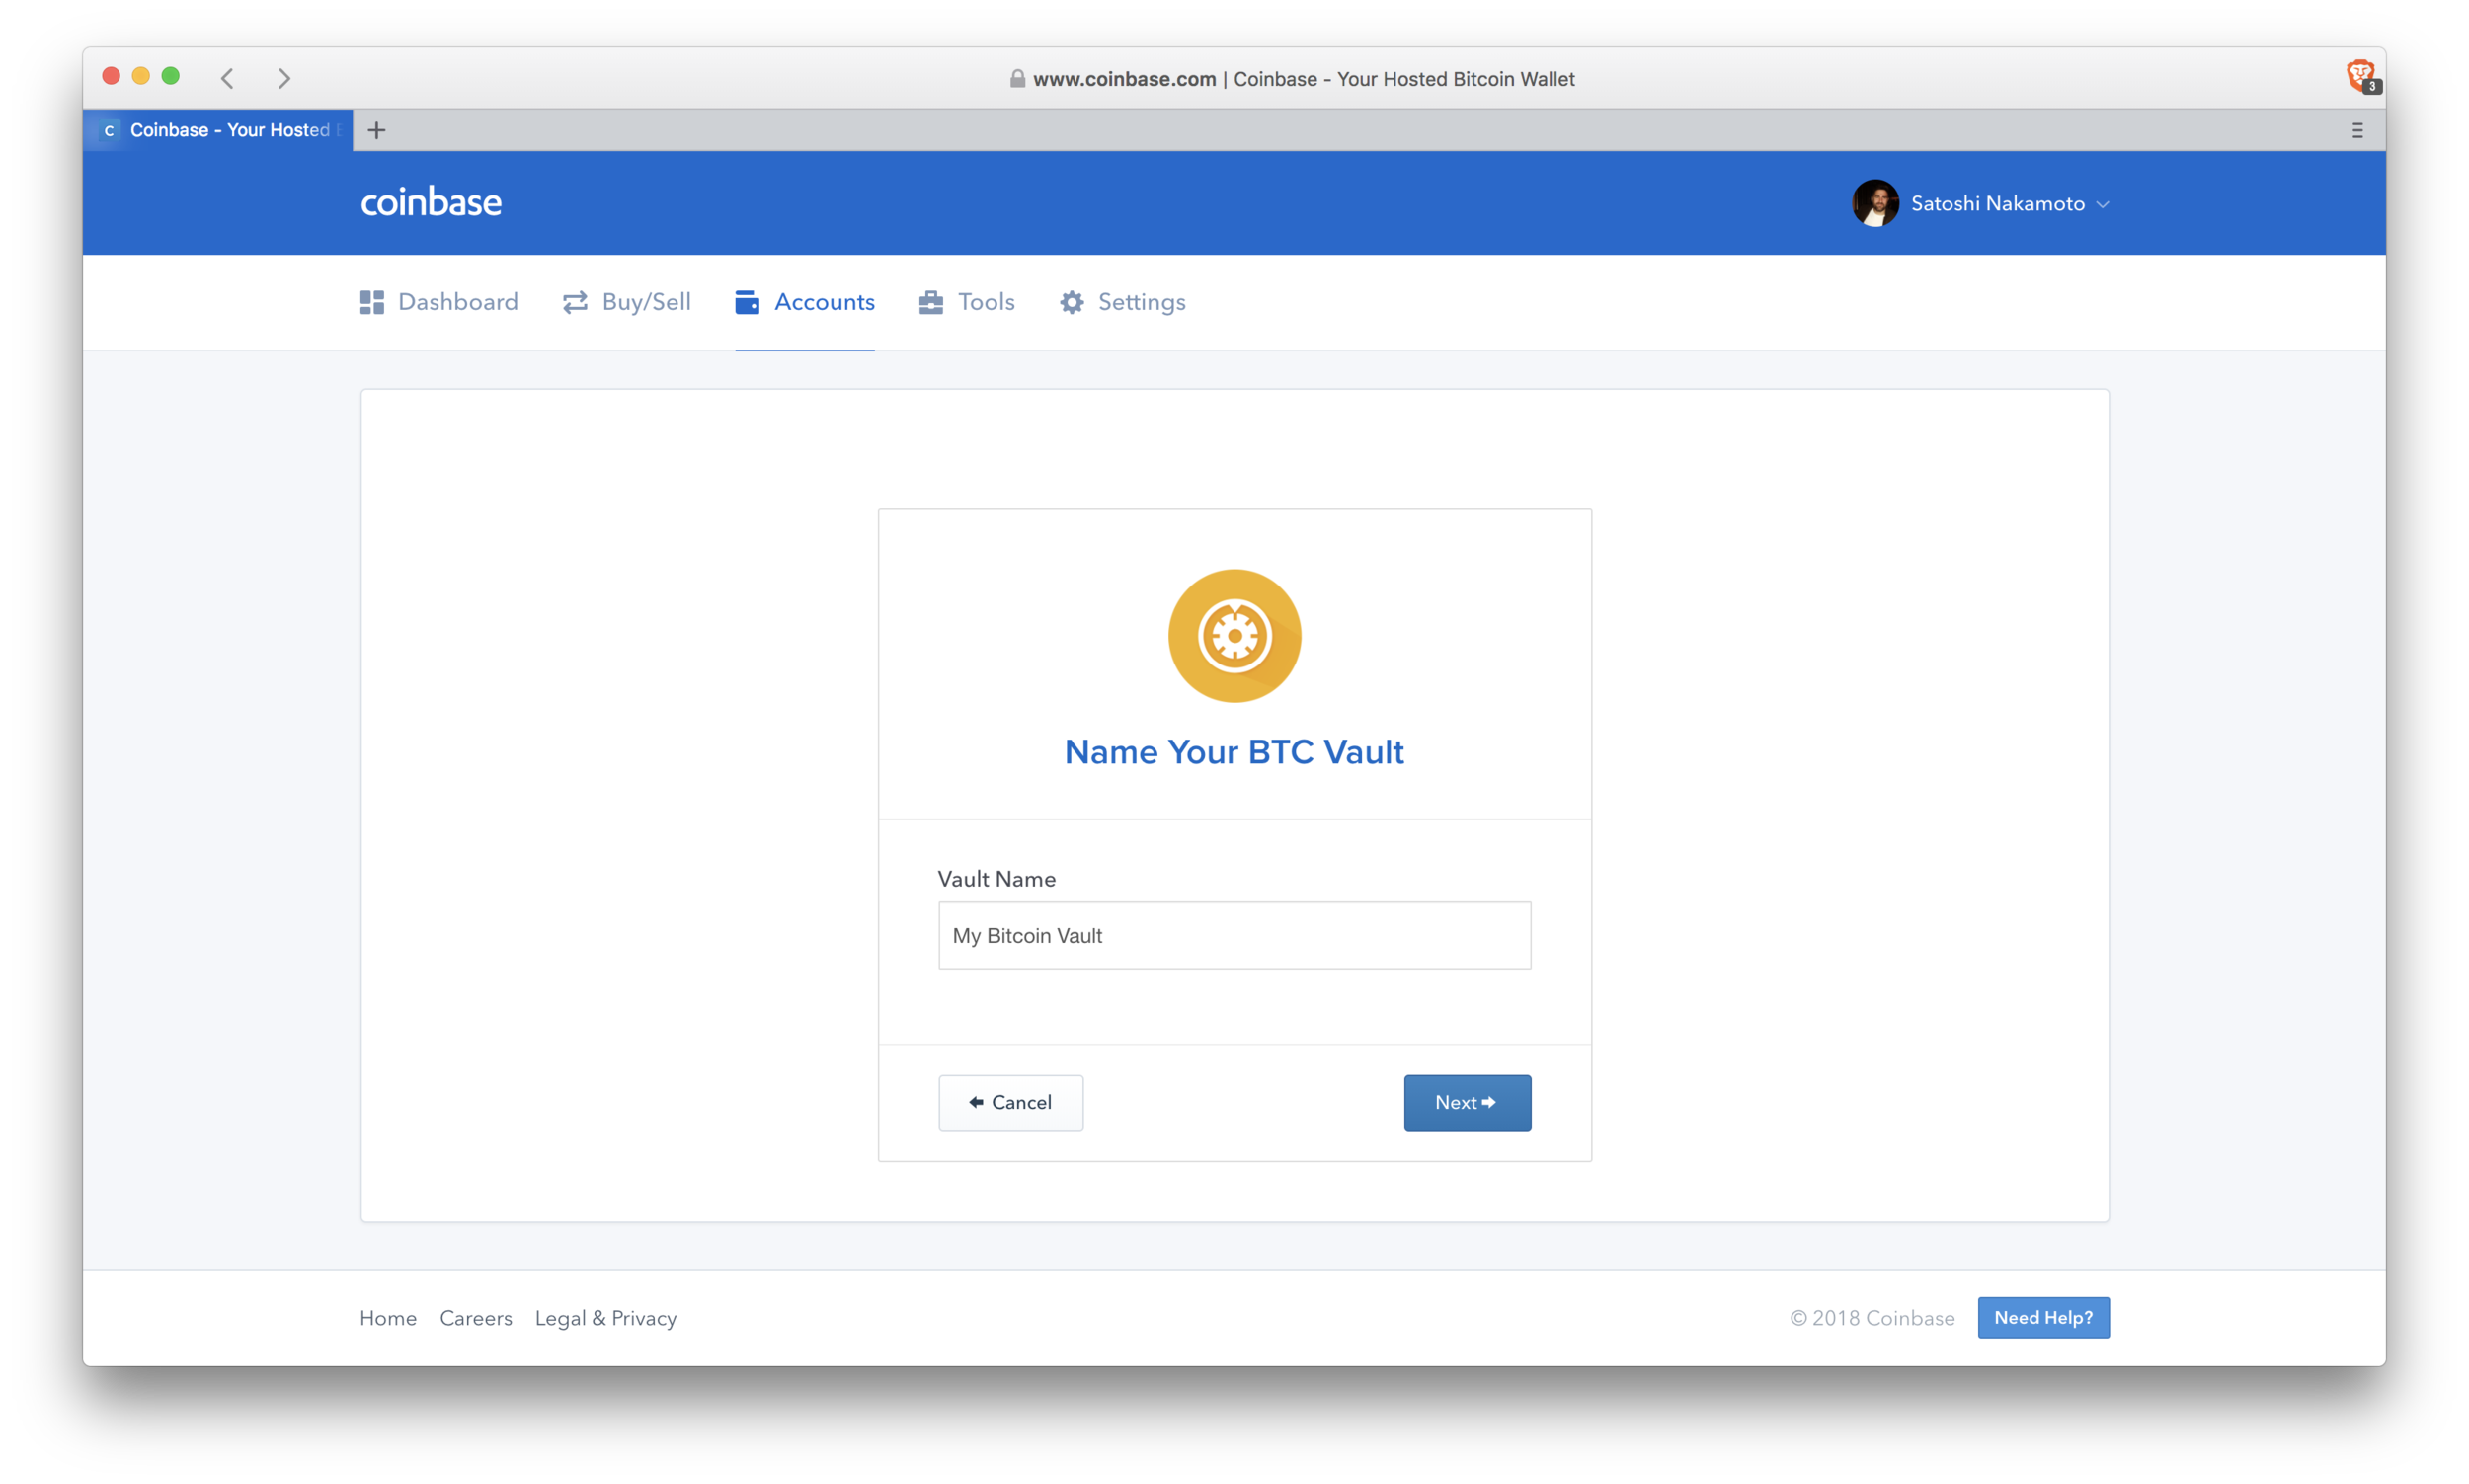 Coinbase: naming your vault